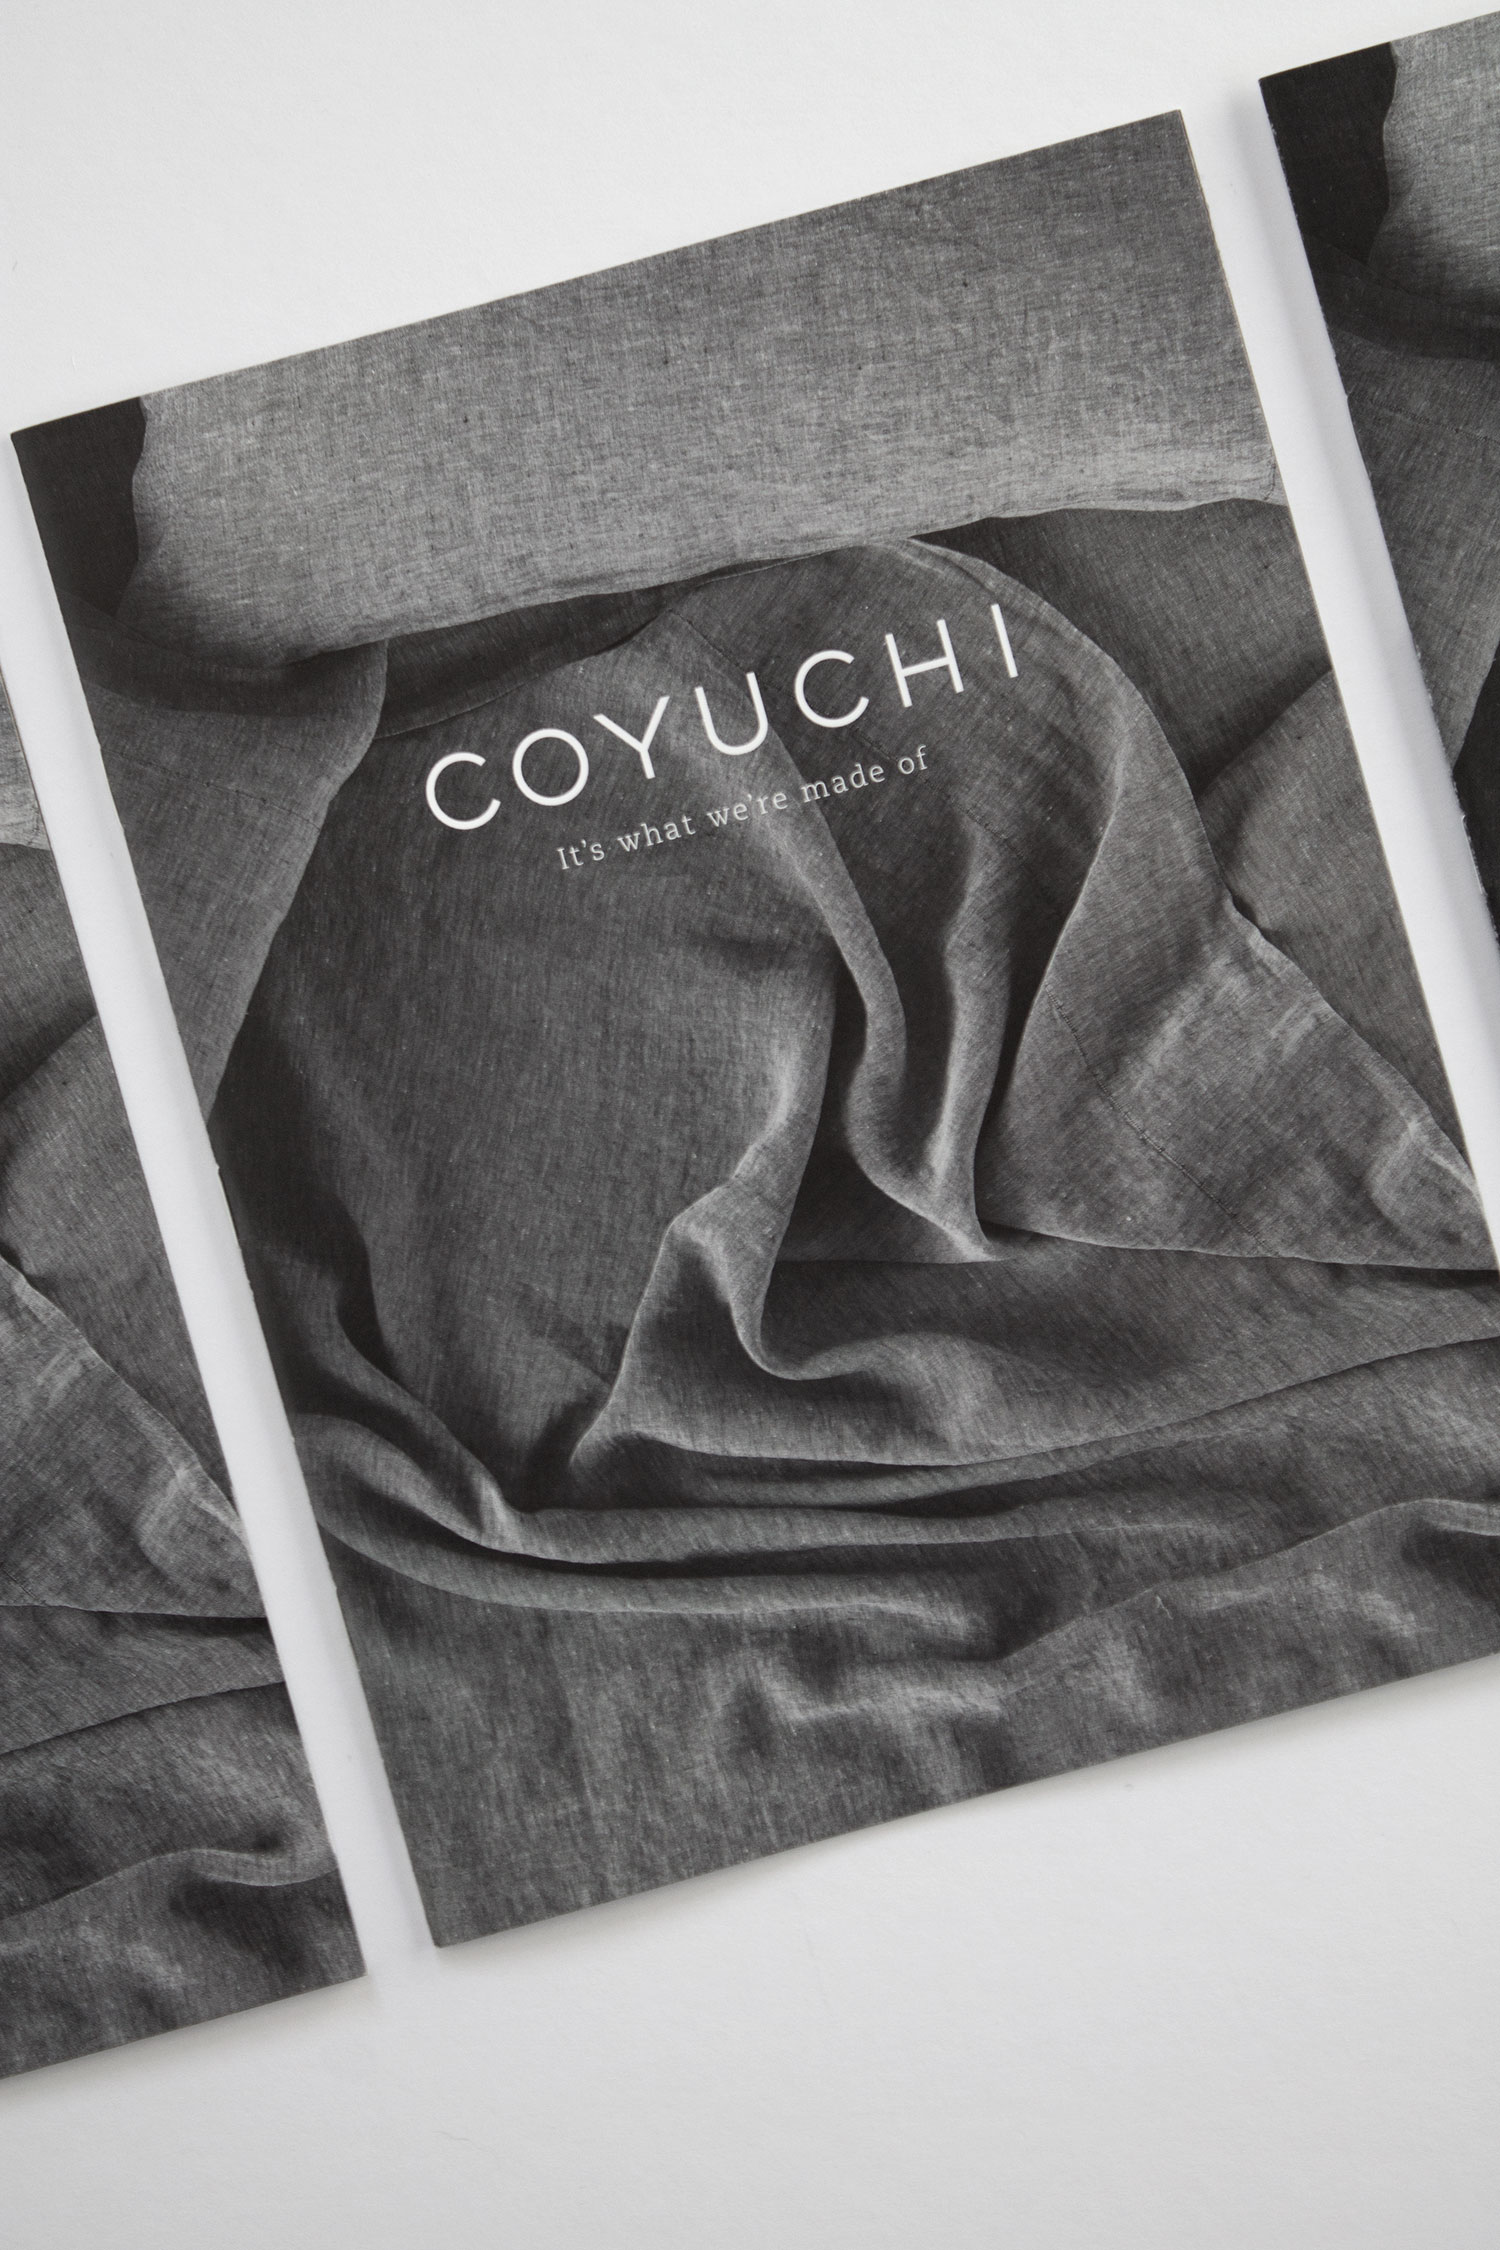 Coyuchi Printed Collateral